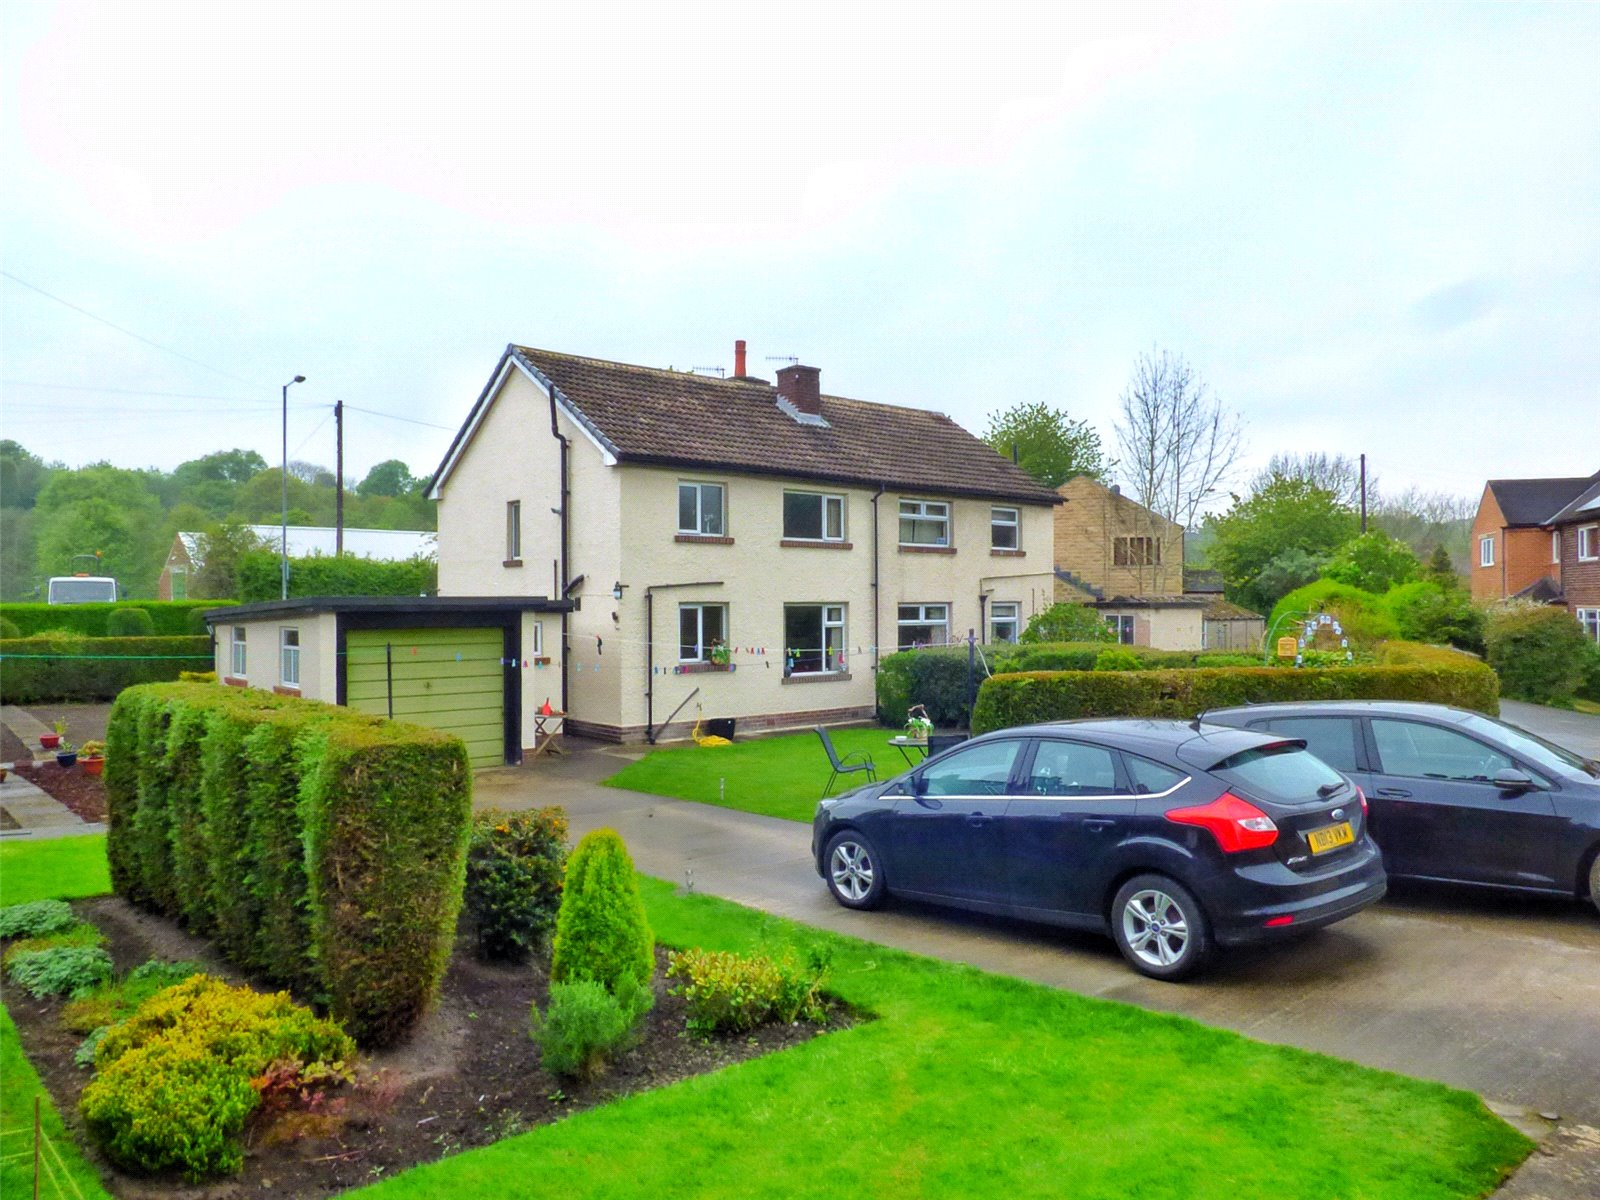 3 Bedrooms Semi Detached House for sale in New Mill Road, Honley, Holmfirth, West Yorkshire, HD9